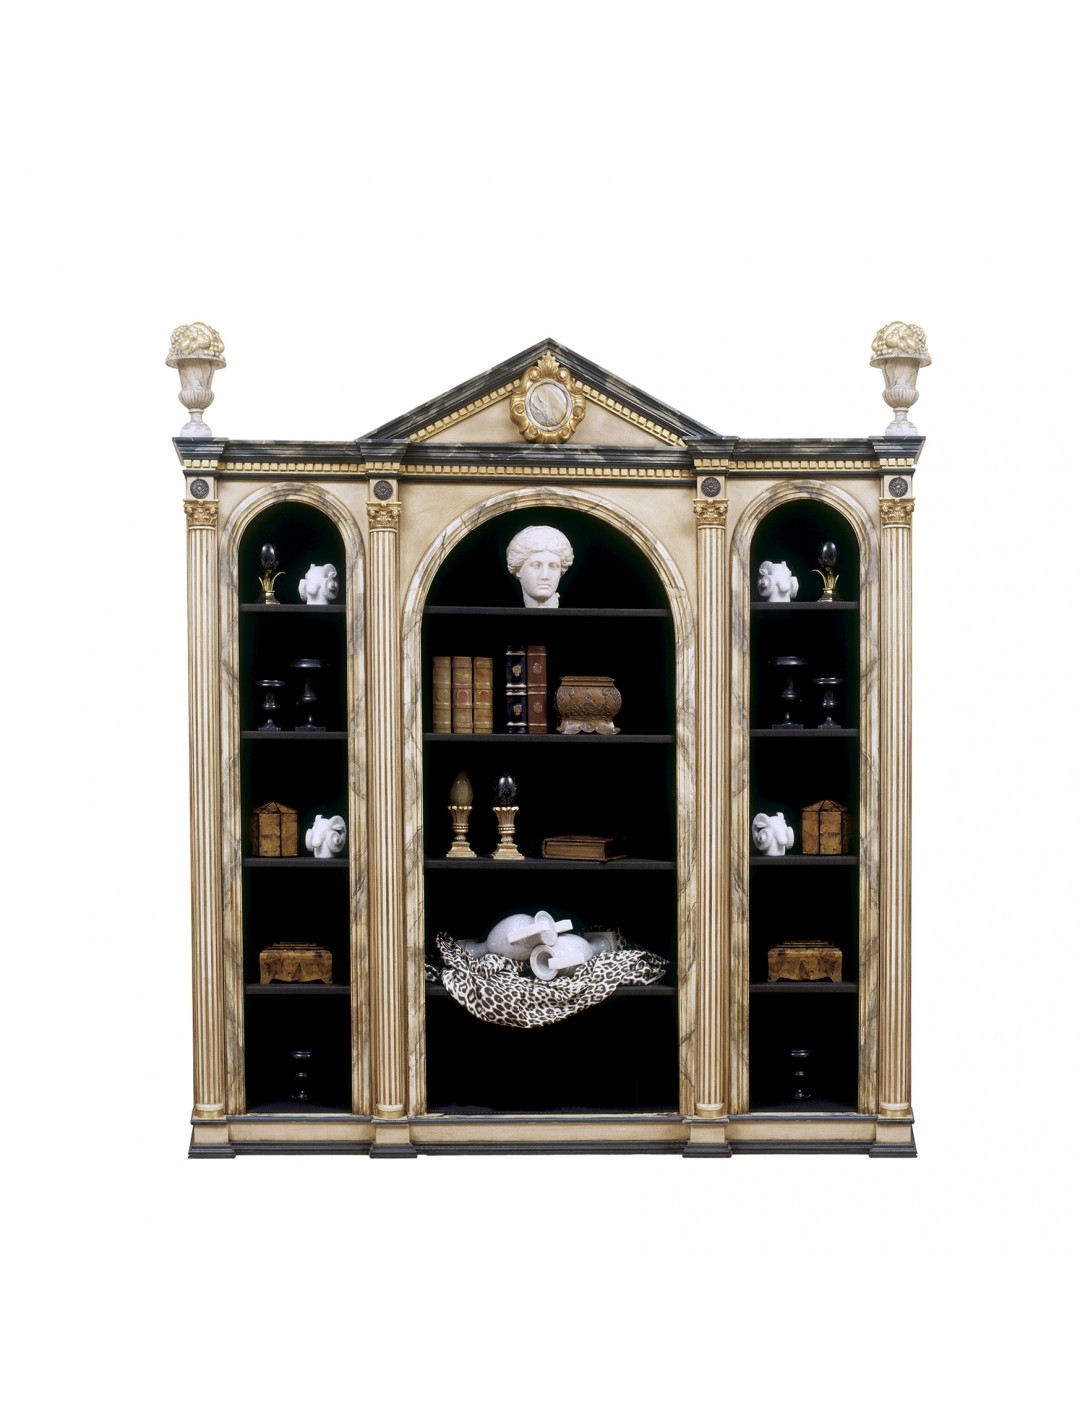 MARCO-POLO CABINET